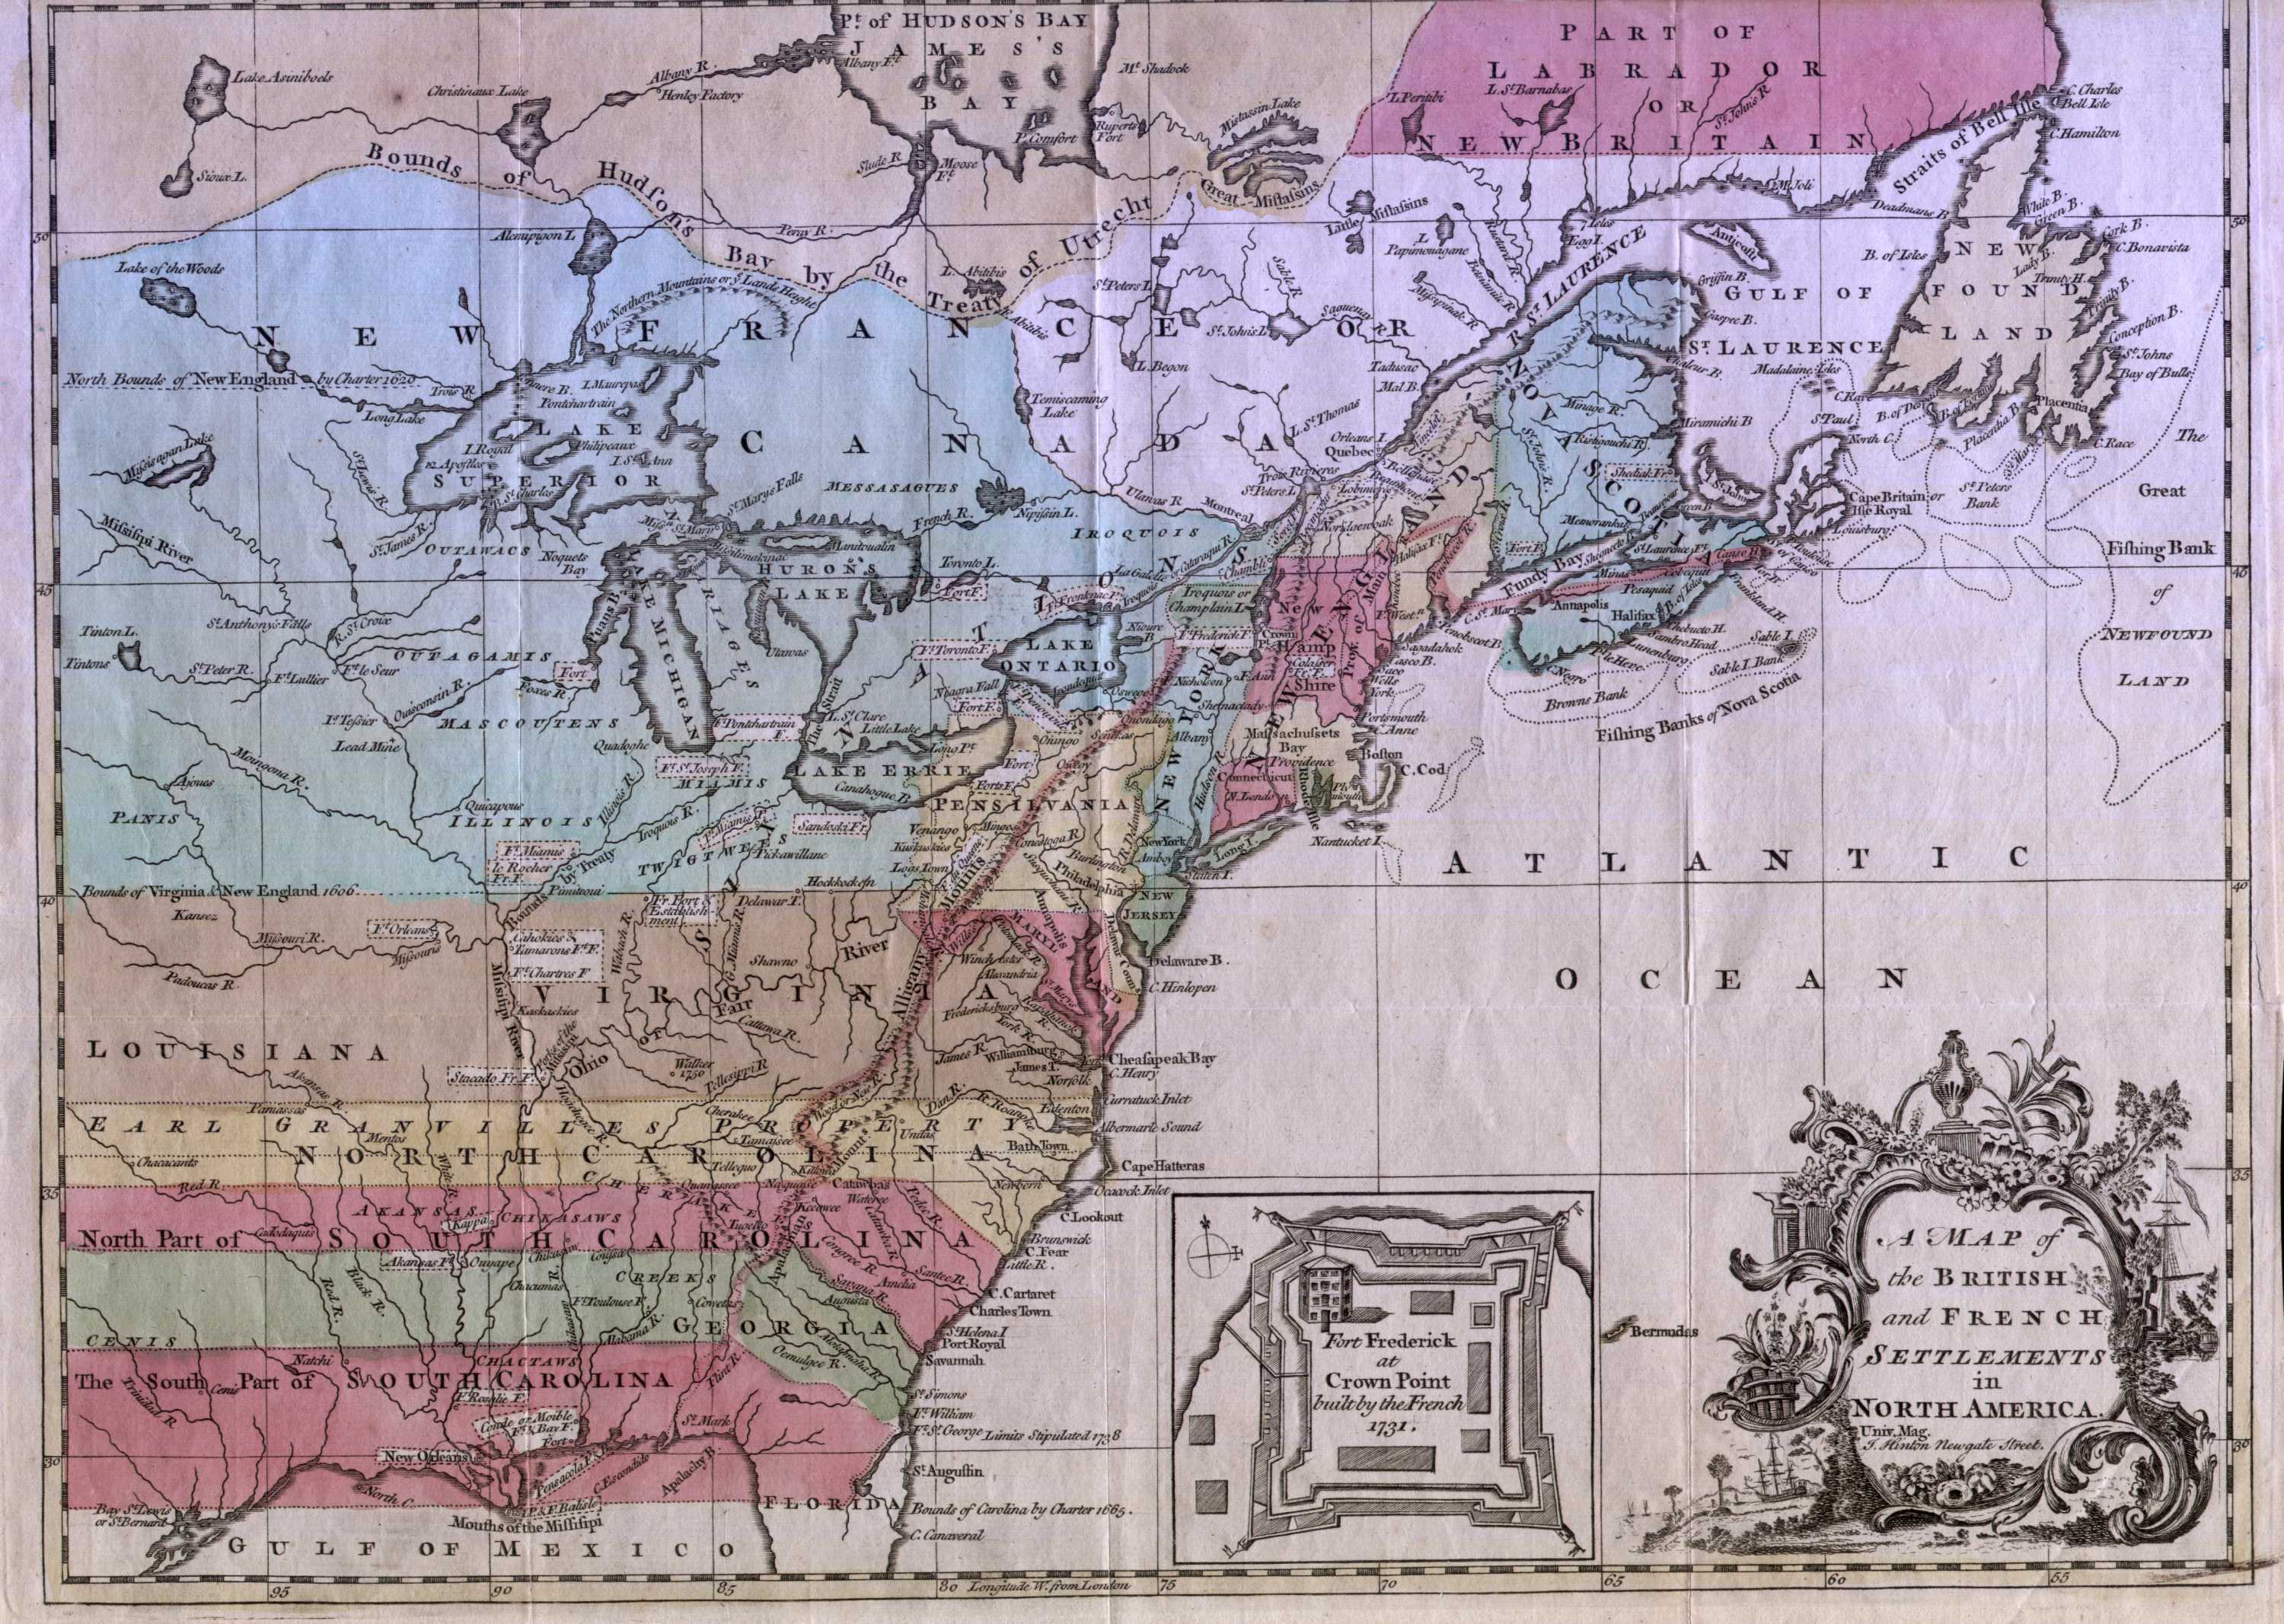 North America Political Outline Map%0A         A MAP OF THE BRITISH AND FRENCH SETTLEMENTS IN NORTH AMERICA  Univ   Mag  J  Hinton Newgate Street  Another map similar to the one above  illustrating